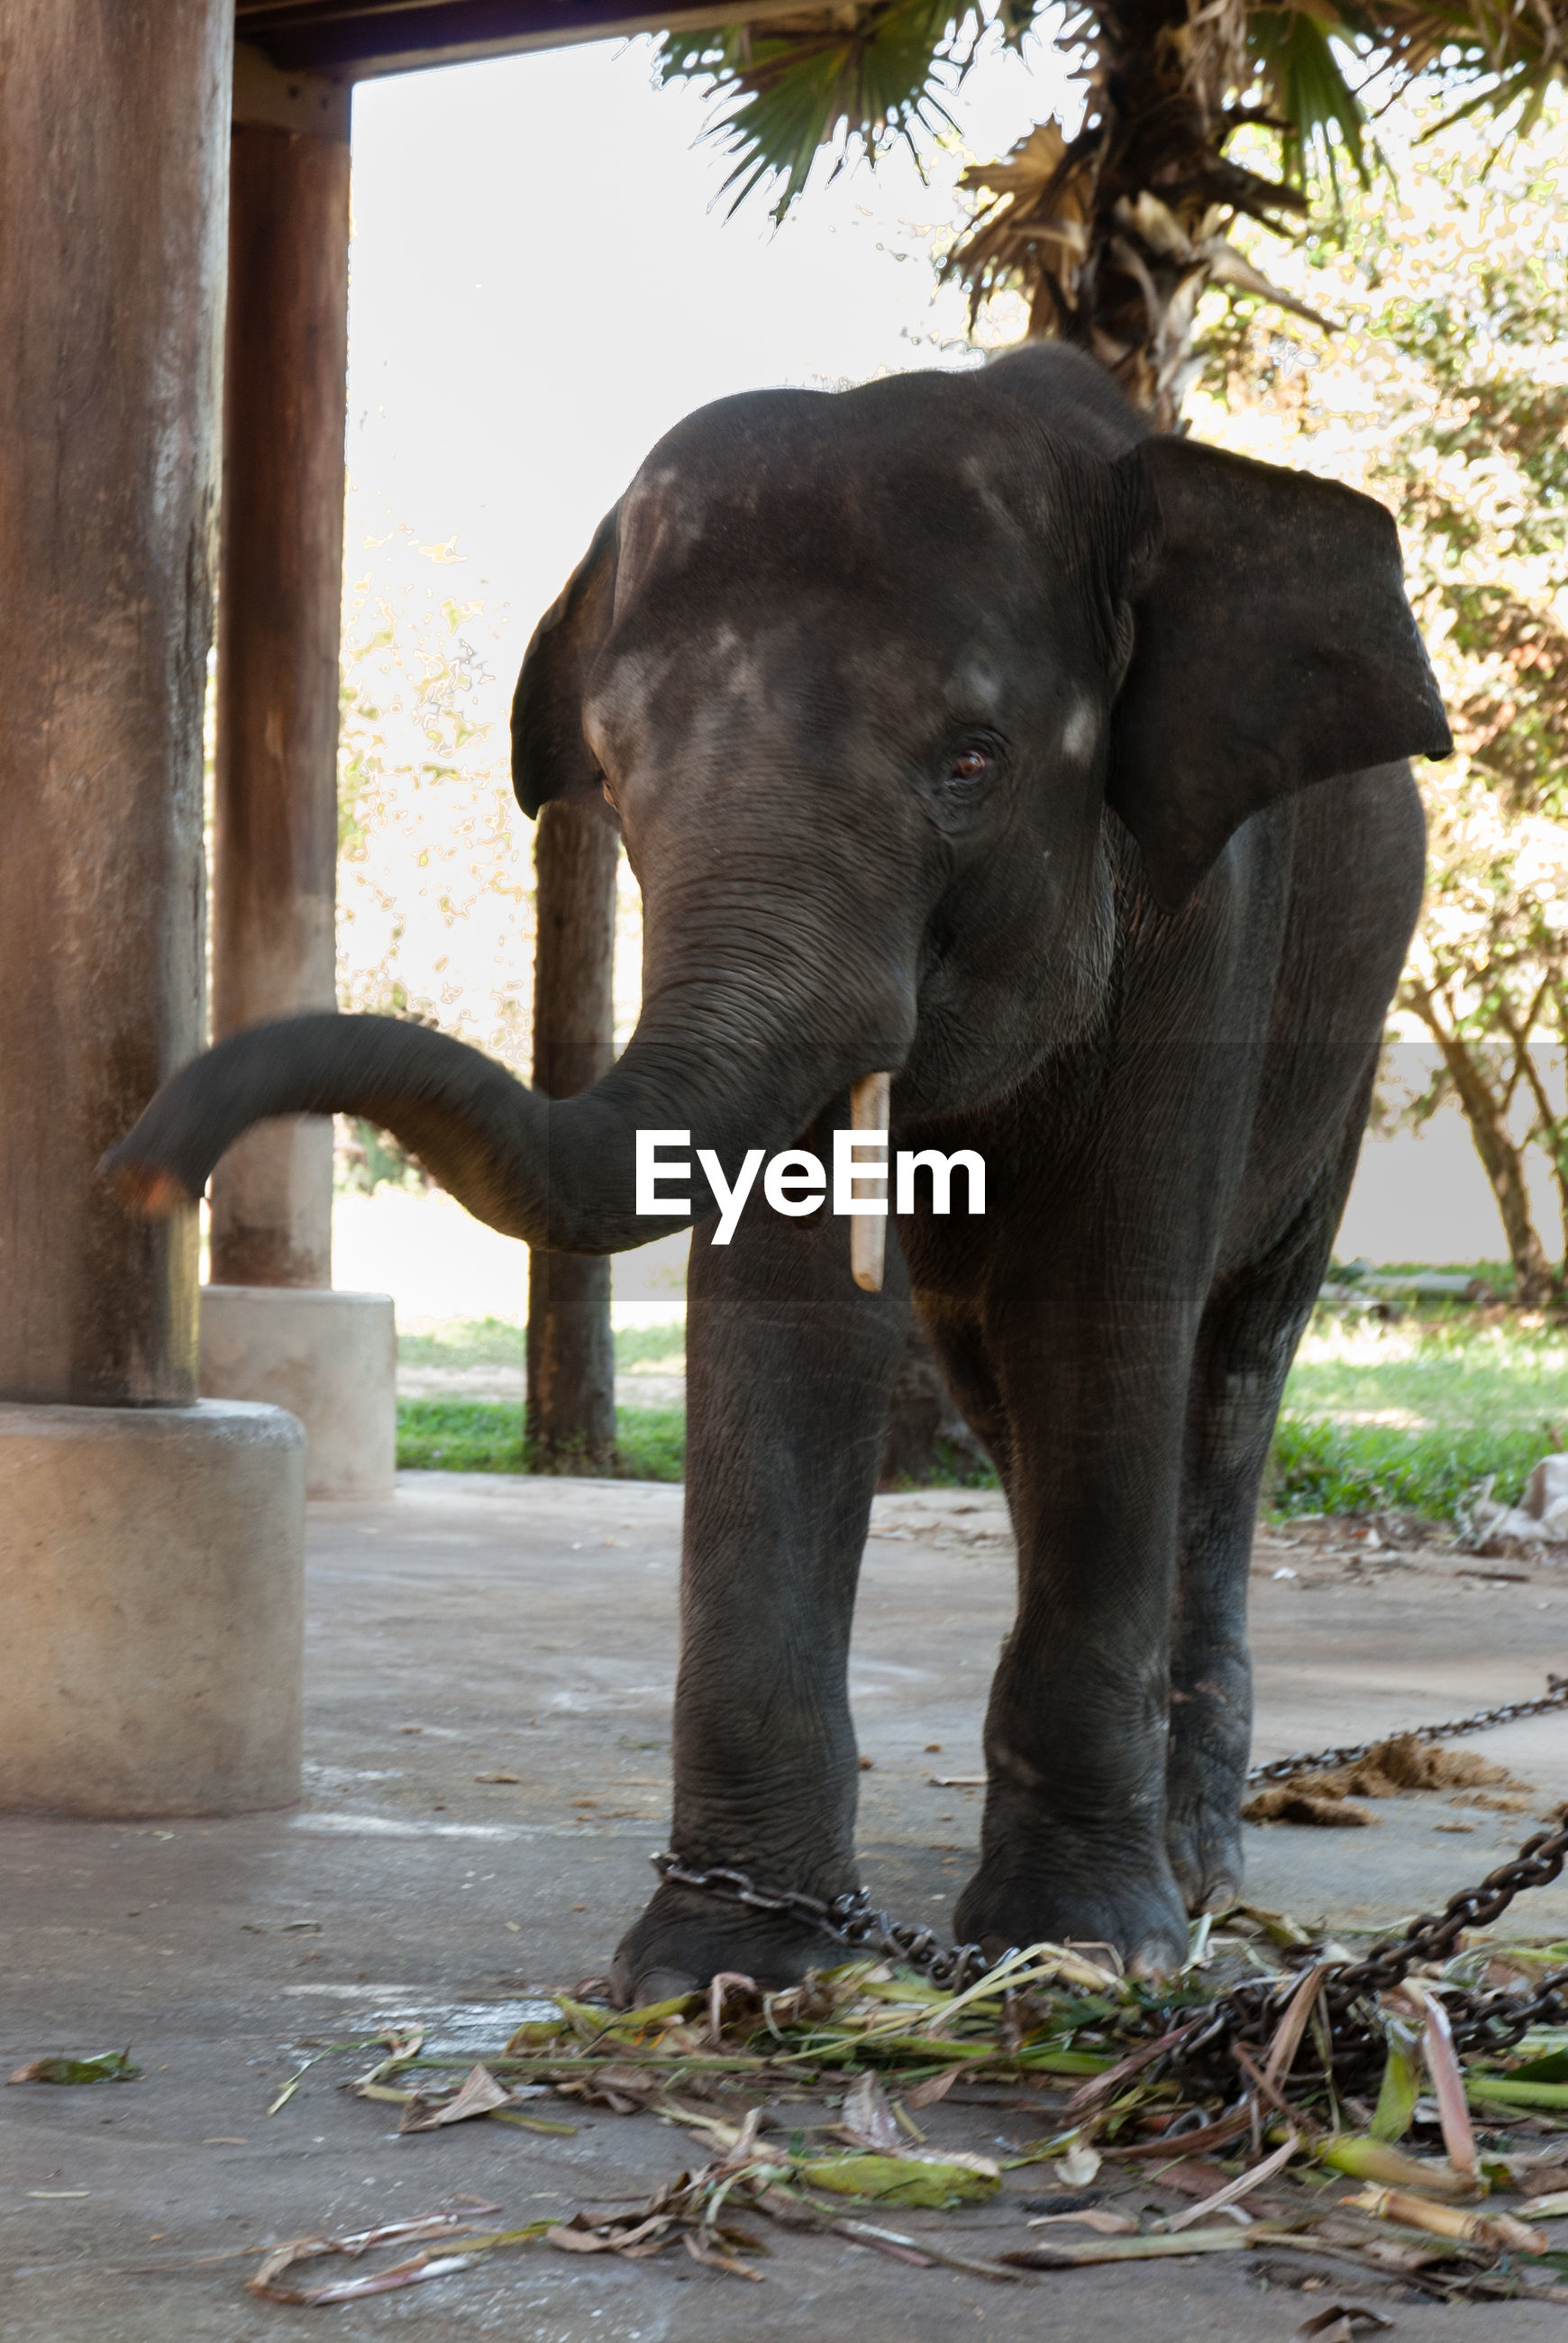 Elephant standing at zoo